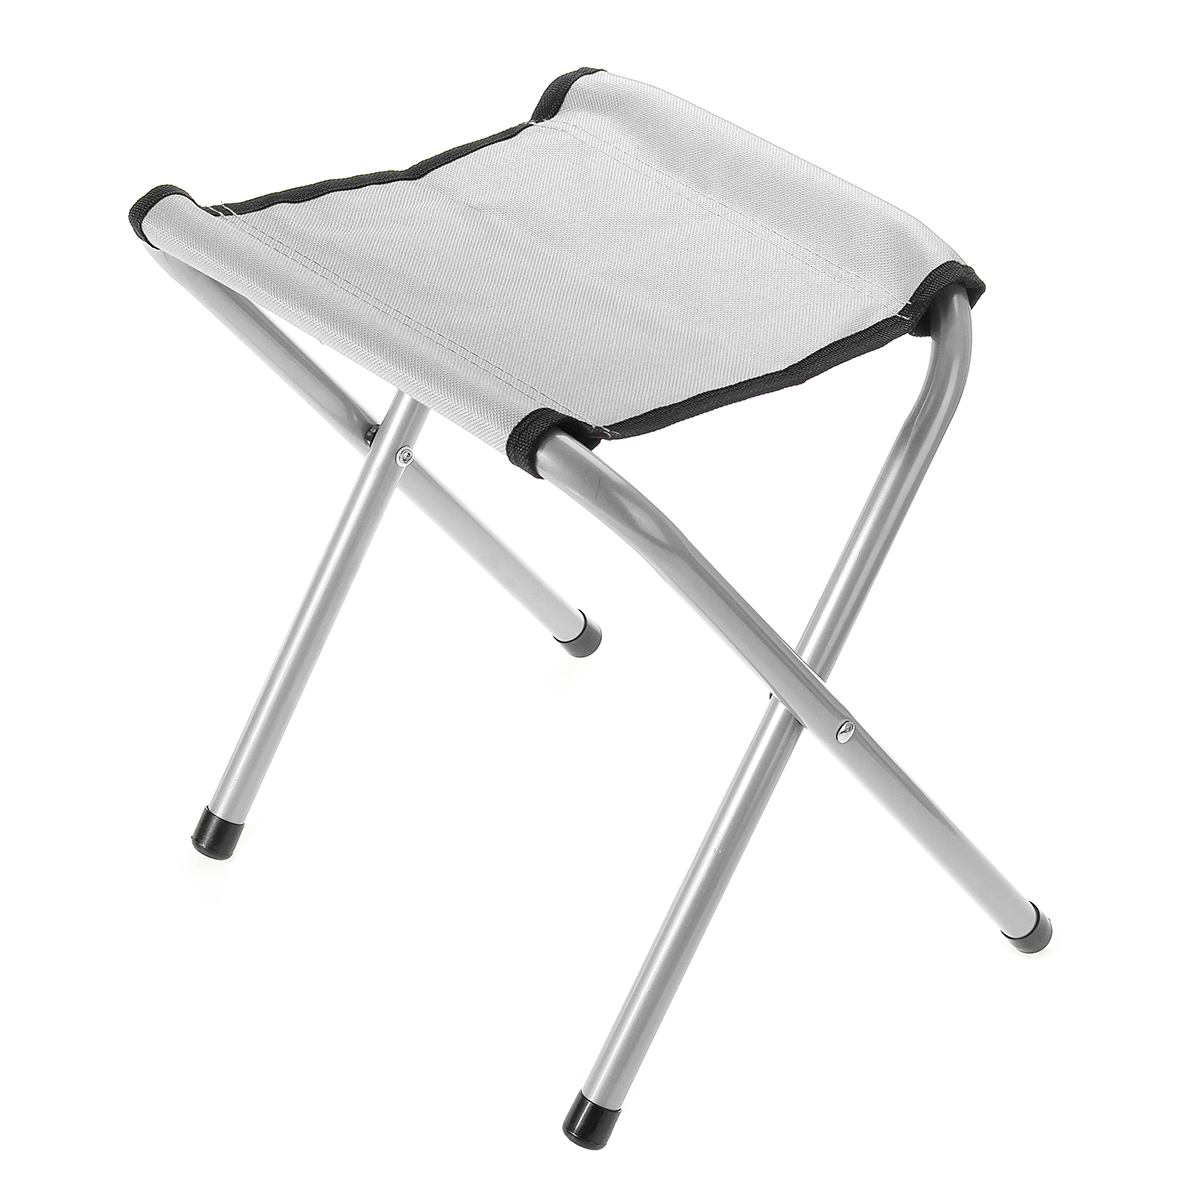 Mini Seat Folding Chair Outdoor Portable Camping Fishing Picnic Beach Stools New